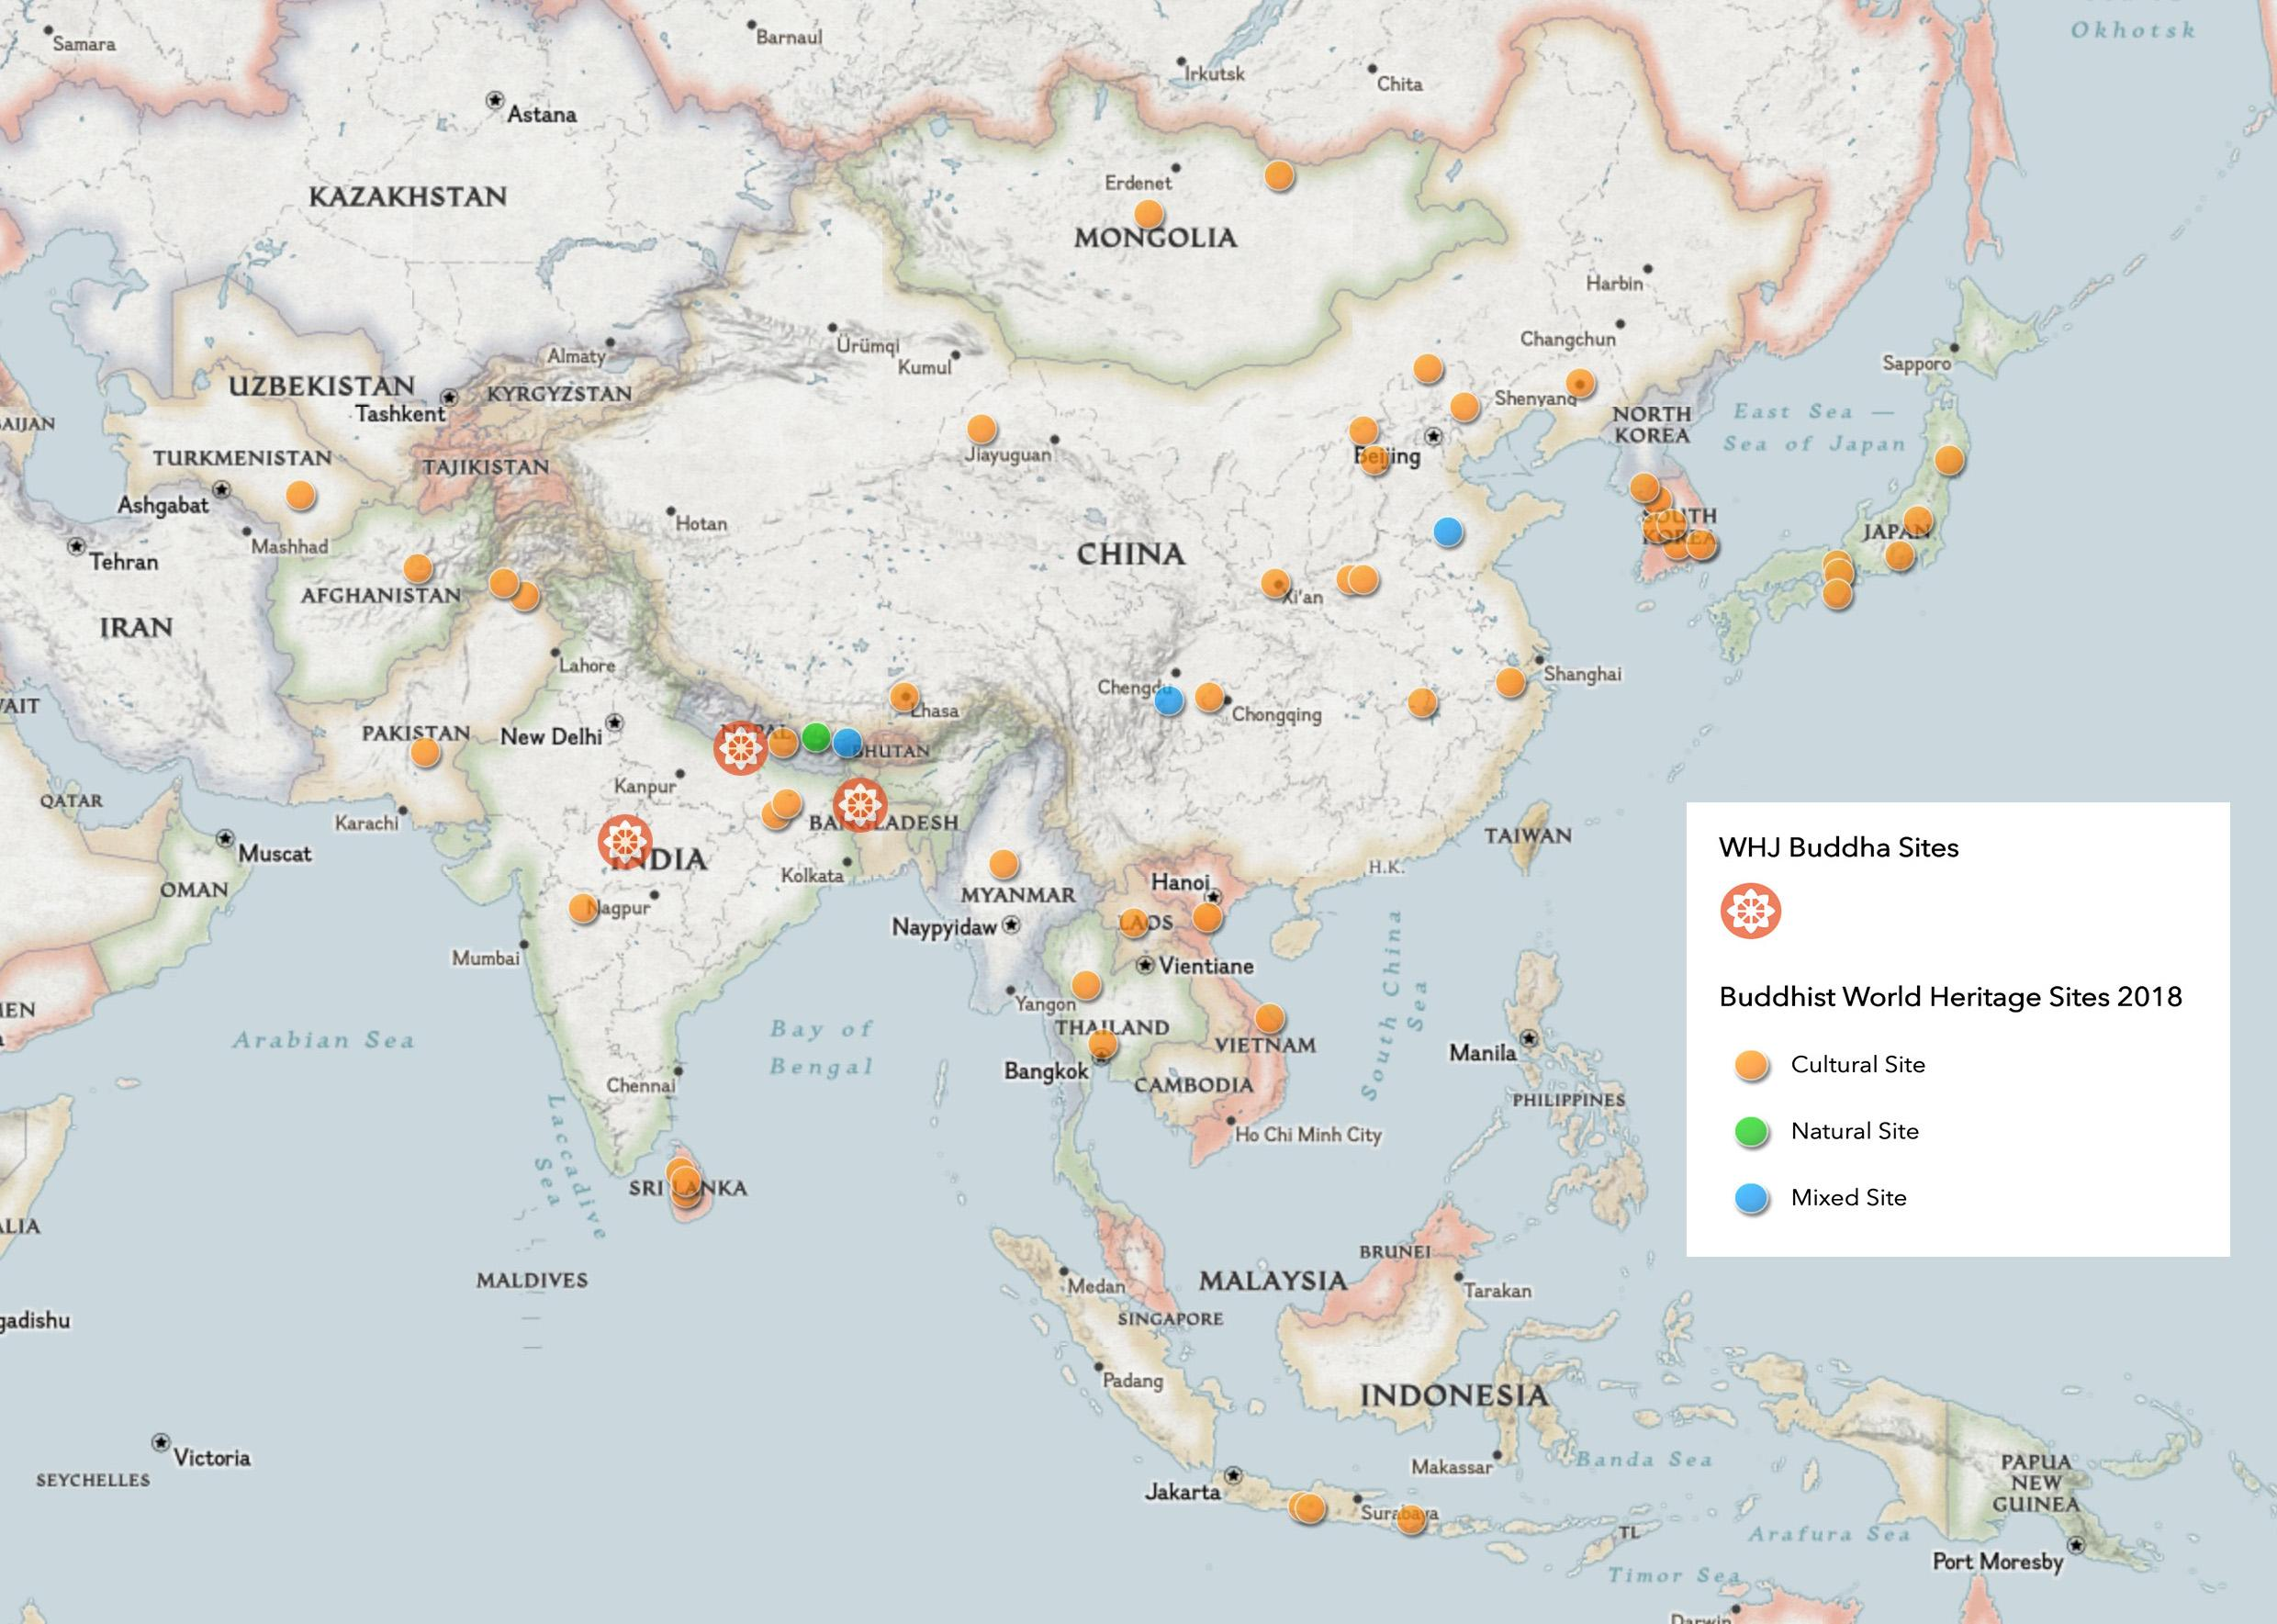 As of 2019, there are 57 UNESCO sites related to Buddhism – © National Geographic Maps